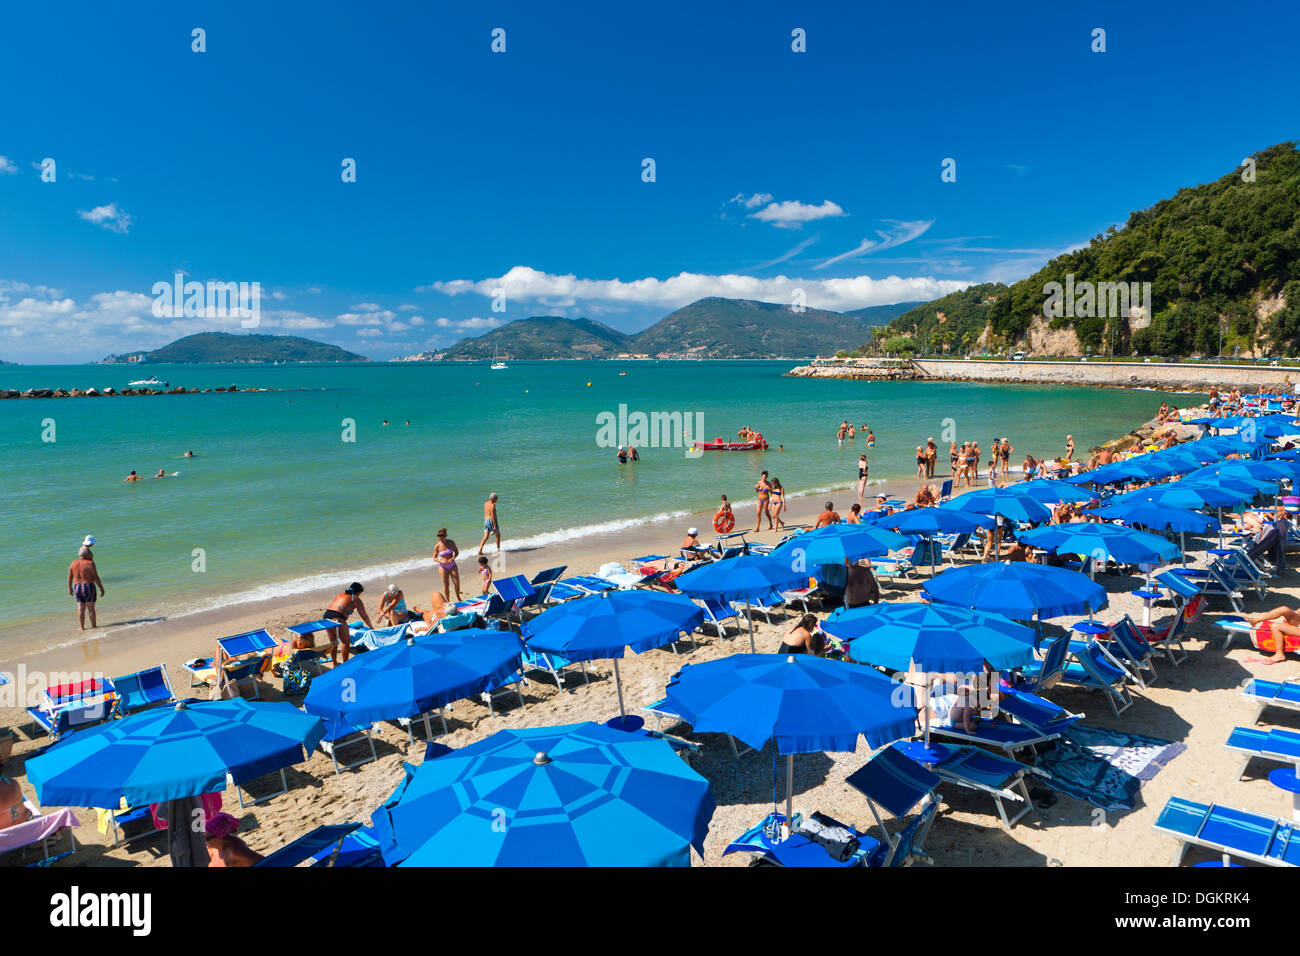 Tourists on the beach at Lerici. - Stock Image